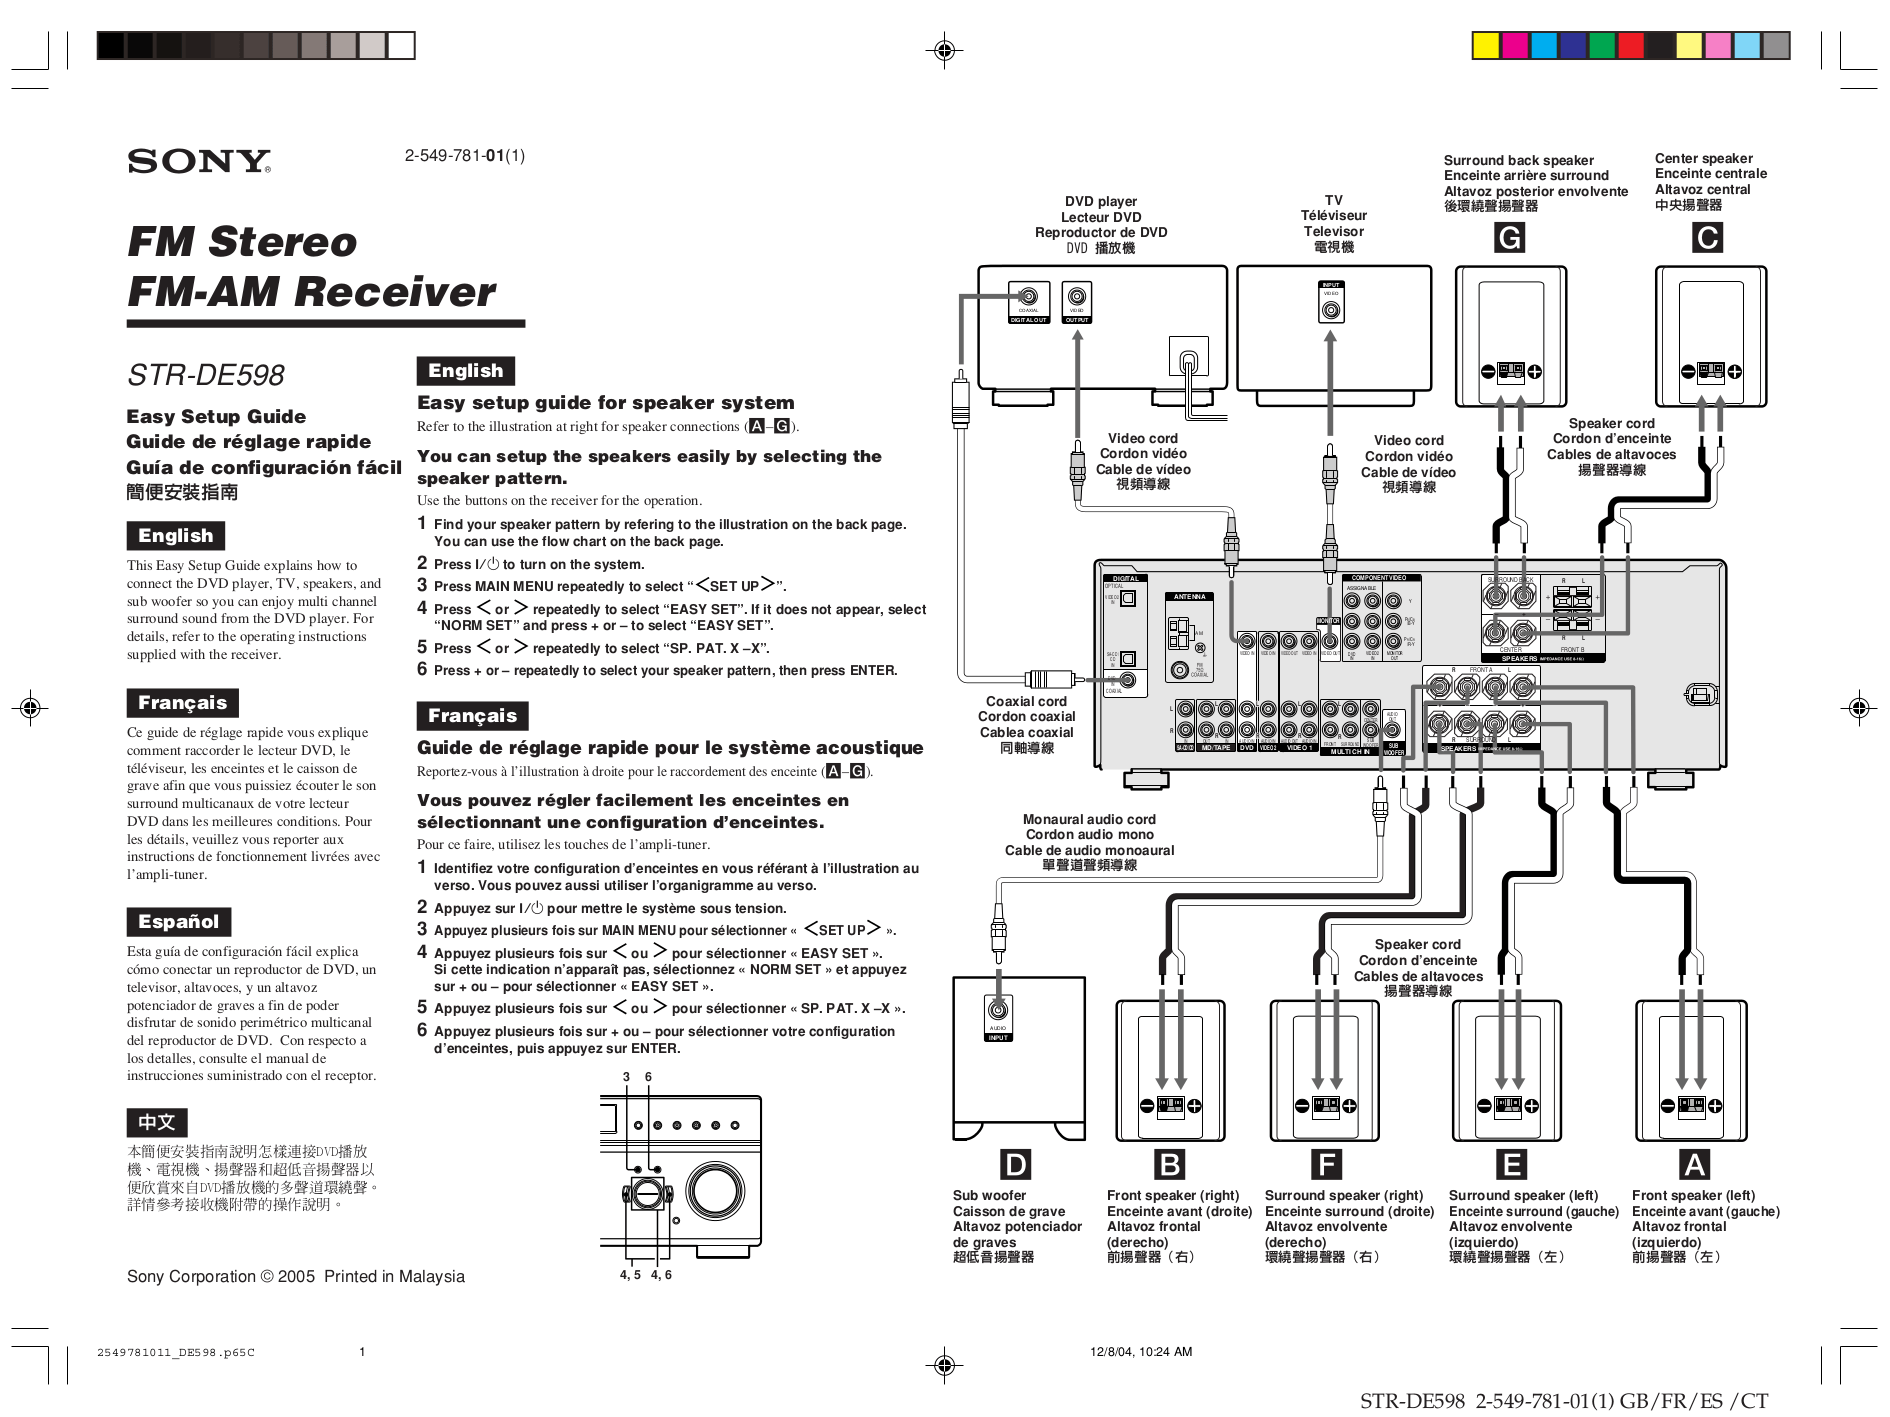 Download free pdf for Sony STR-DE598 Receiver manual